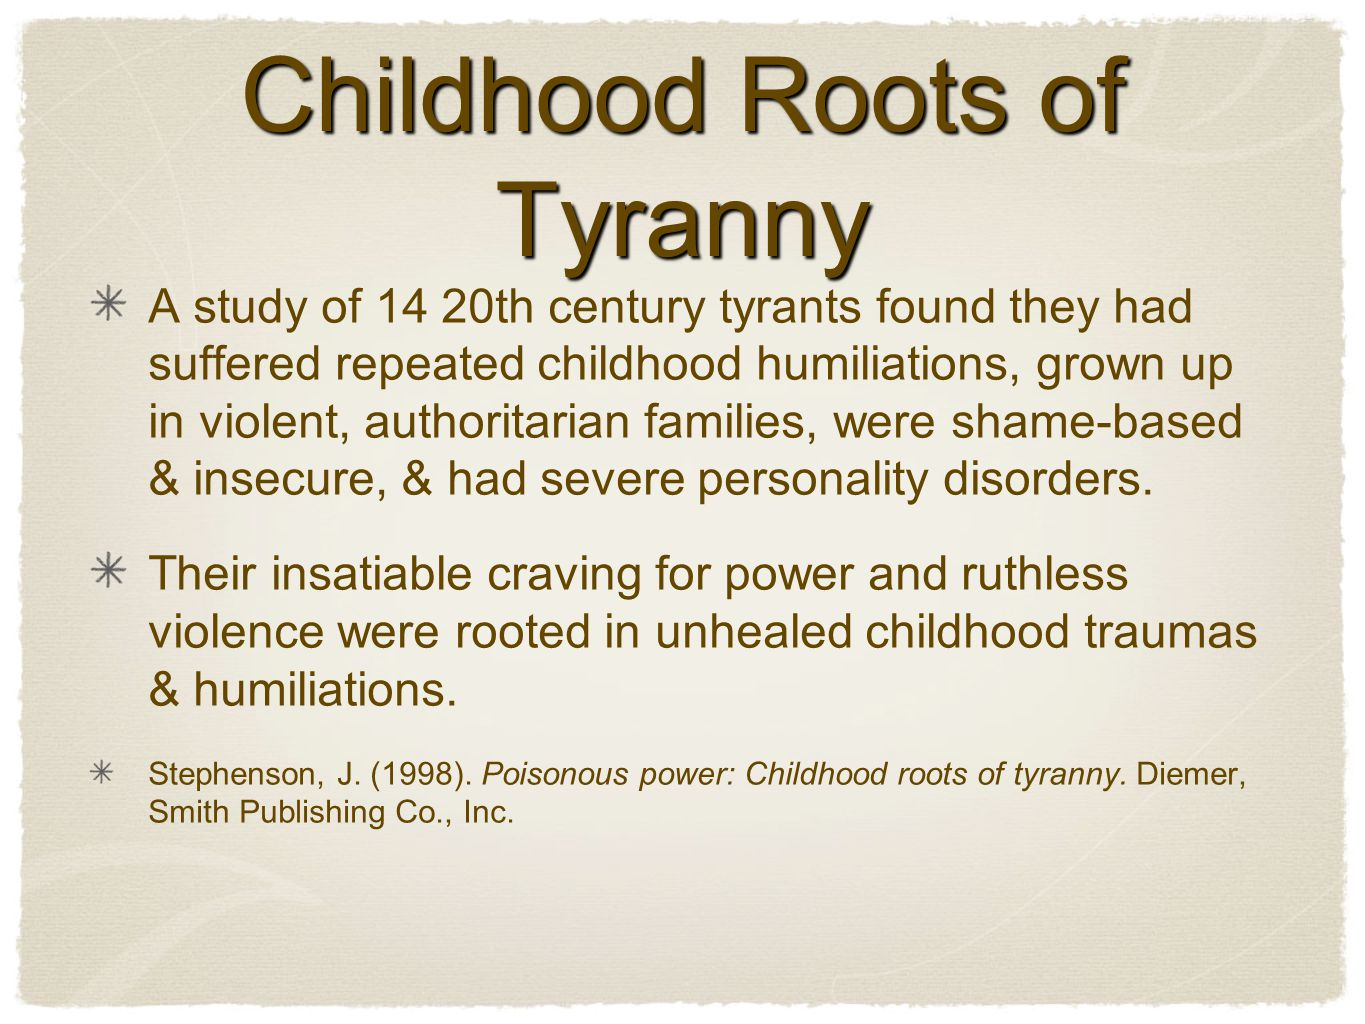 Childhood Roots of Tyranny A study of 14 20th century tyrants found they had suffered repeated childhood humiliations, grown up in violent, authoritarian families, were shame-based & insecure, & had severe personality disorders.